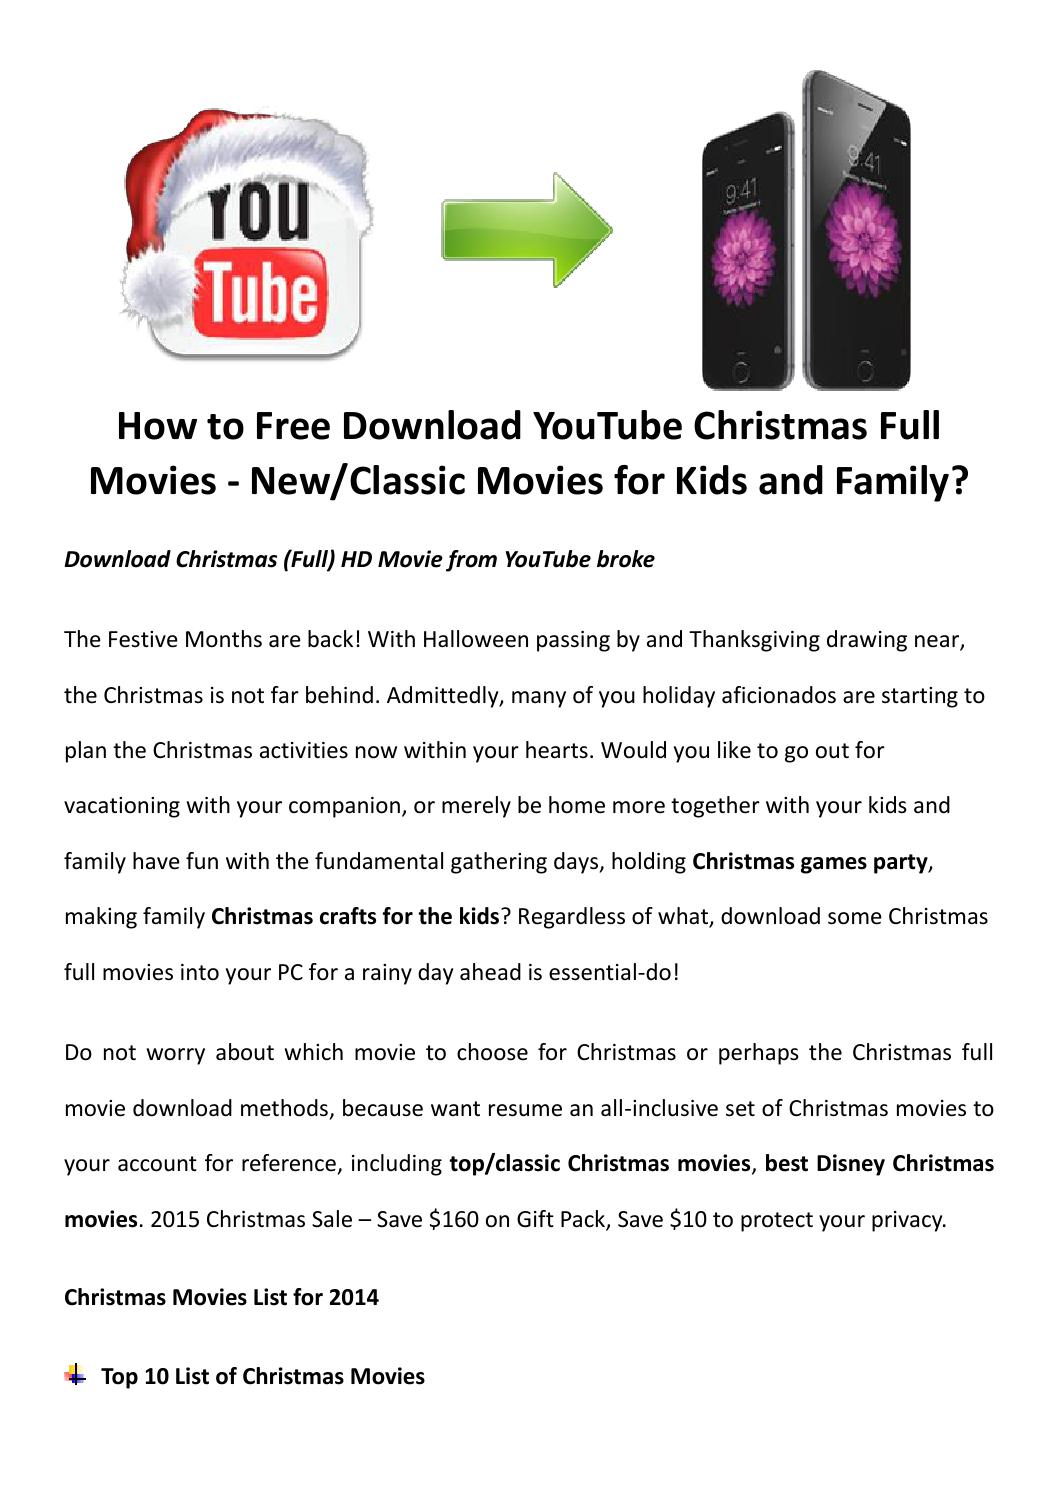 Free download christmas full movies by LucyMorries - issuu